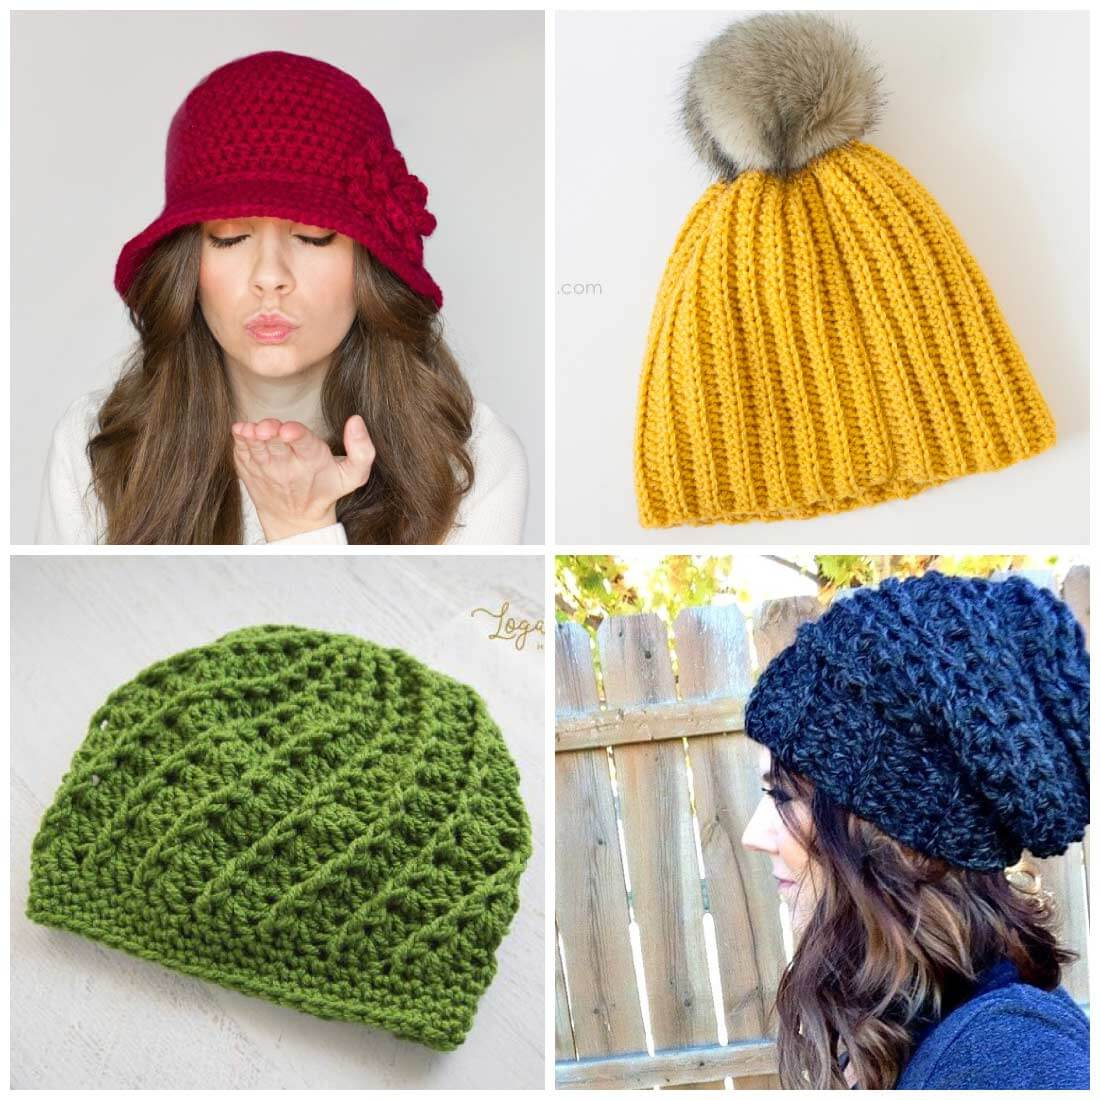 free crochet hat patterns | free crochet patterns | crochet patterns | use  these WSIVNHW